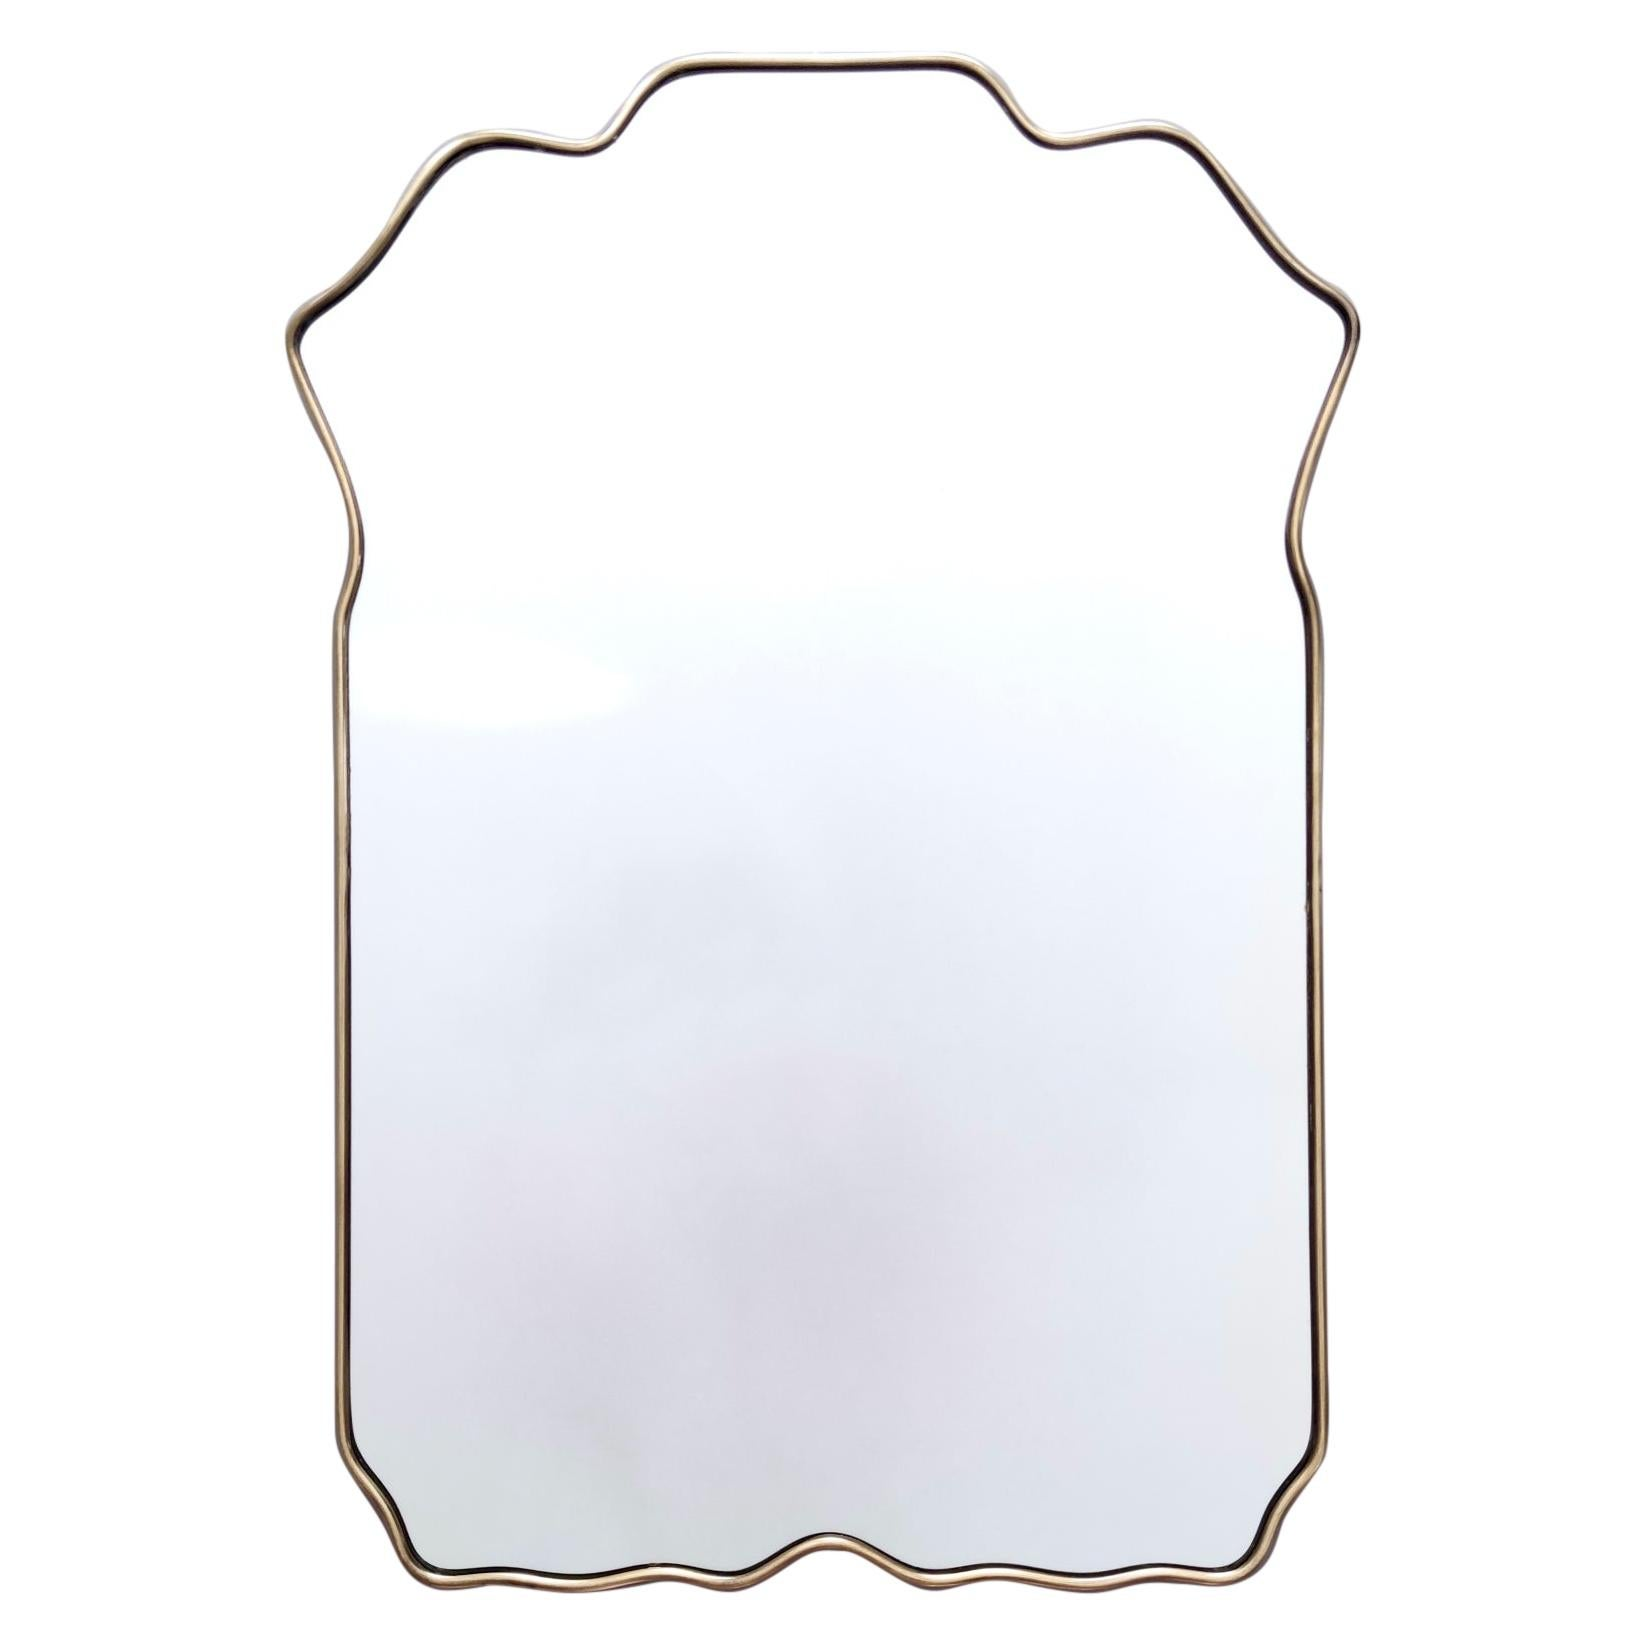 Vintage Shield Shaped Wall Mirror with Brass Frame, Italy